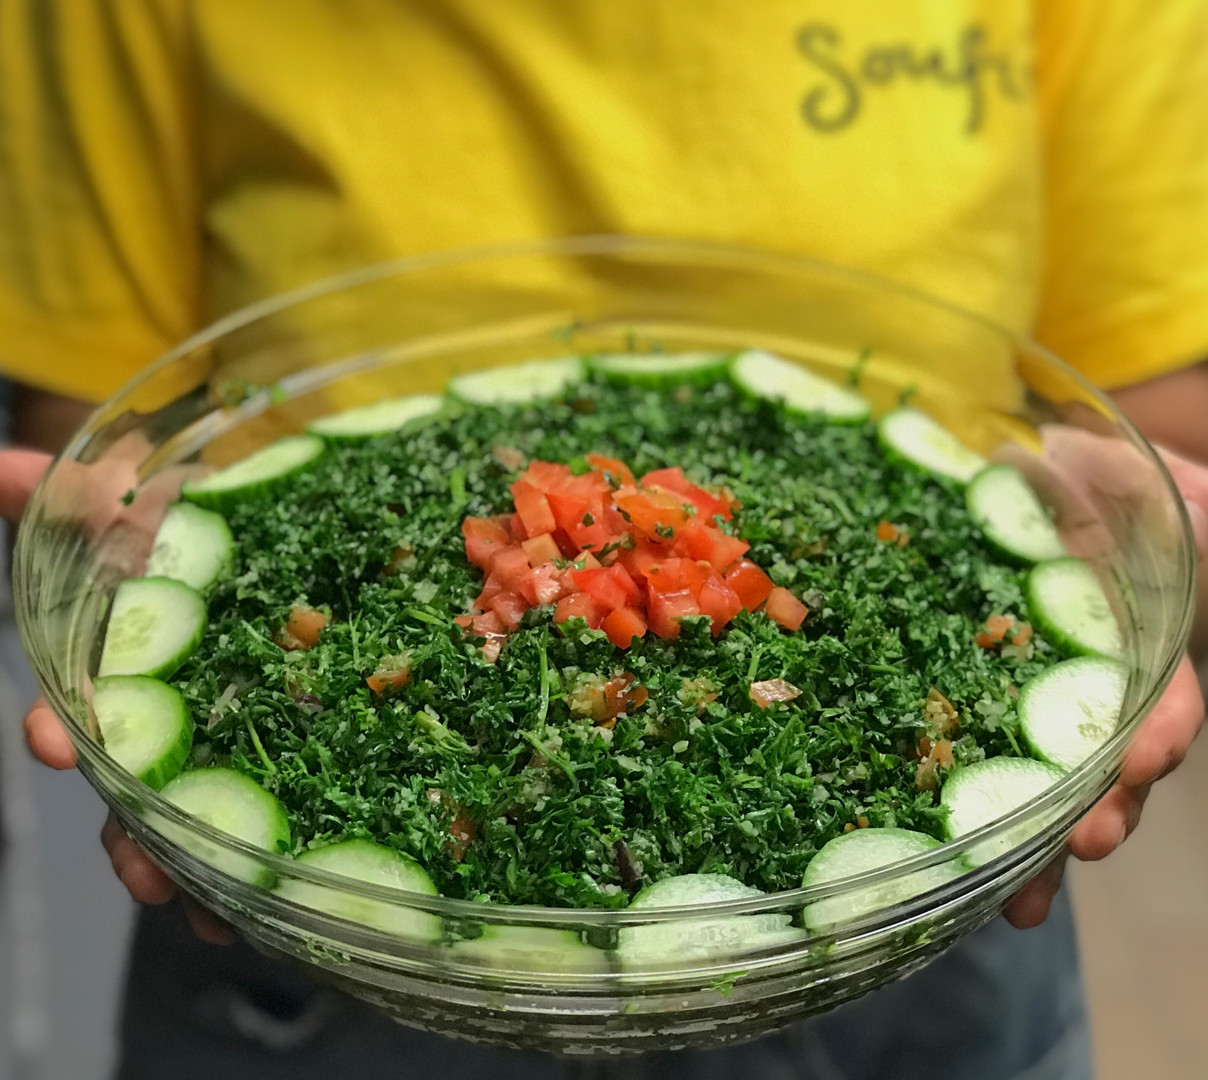 Party-sized appetizer bowls [Tabouleh salad]